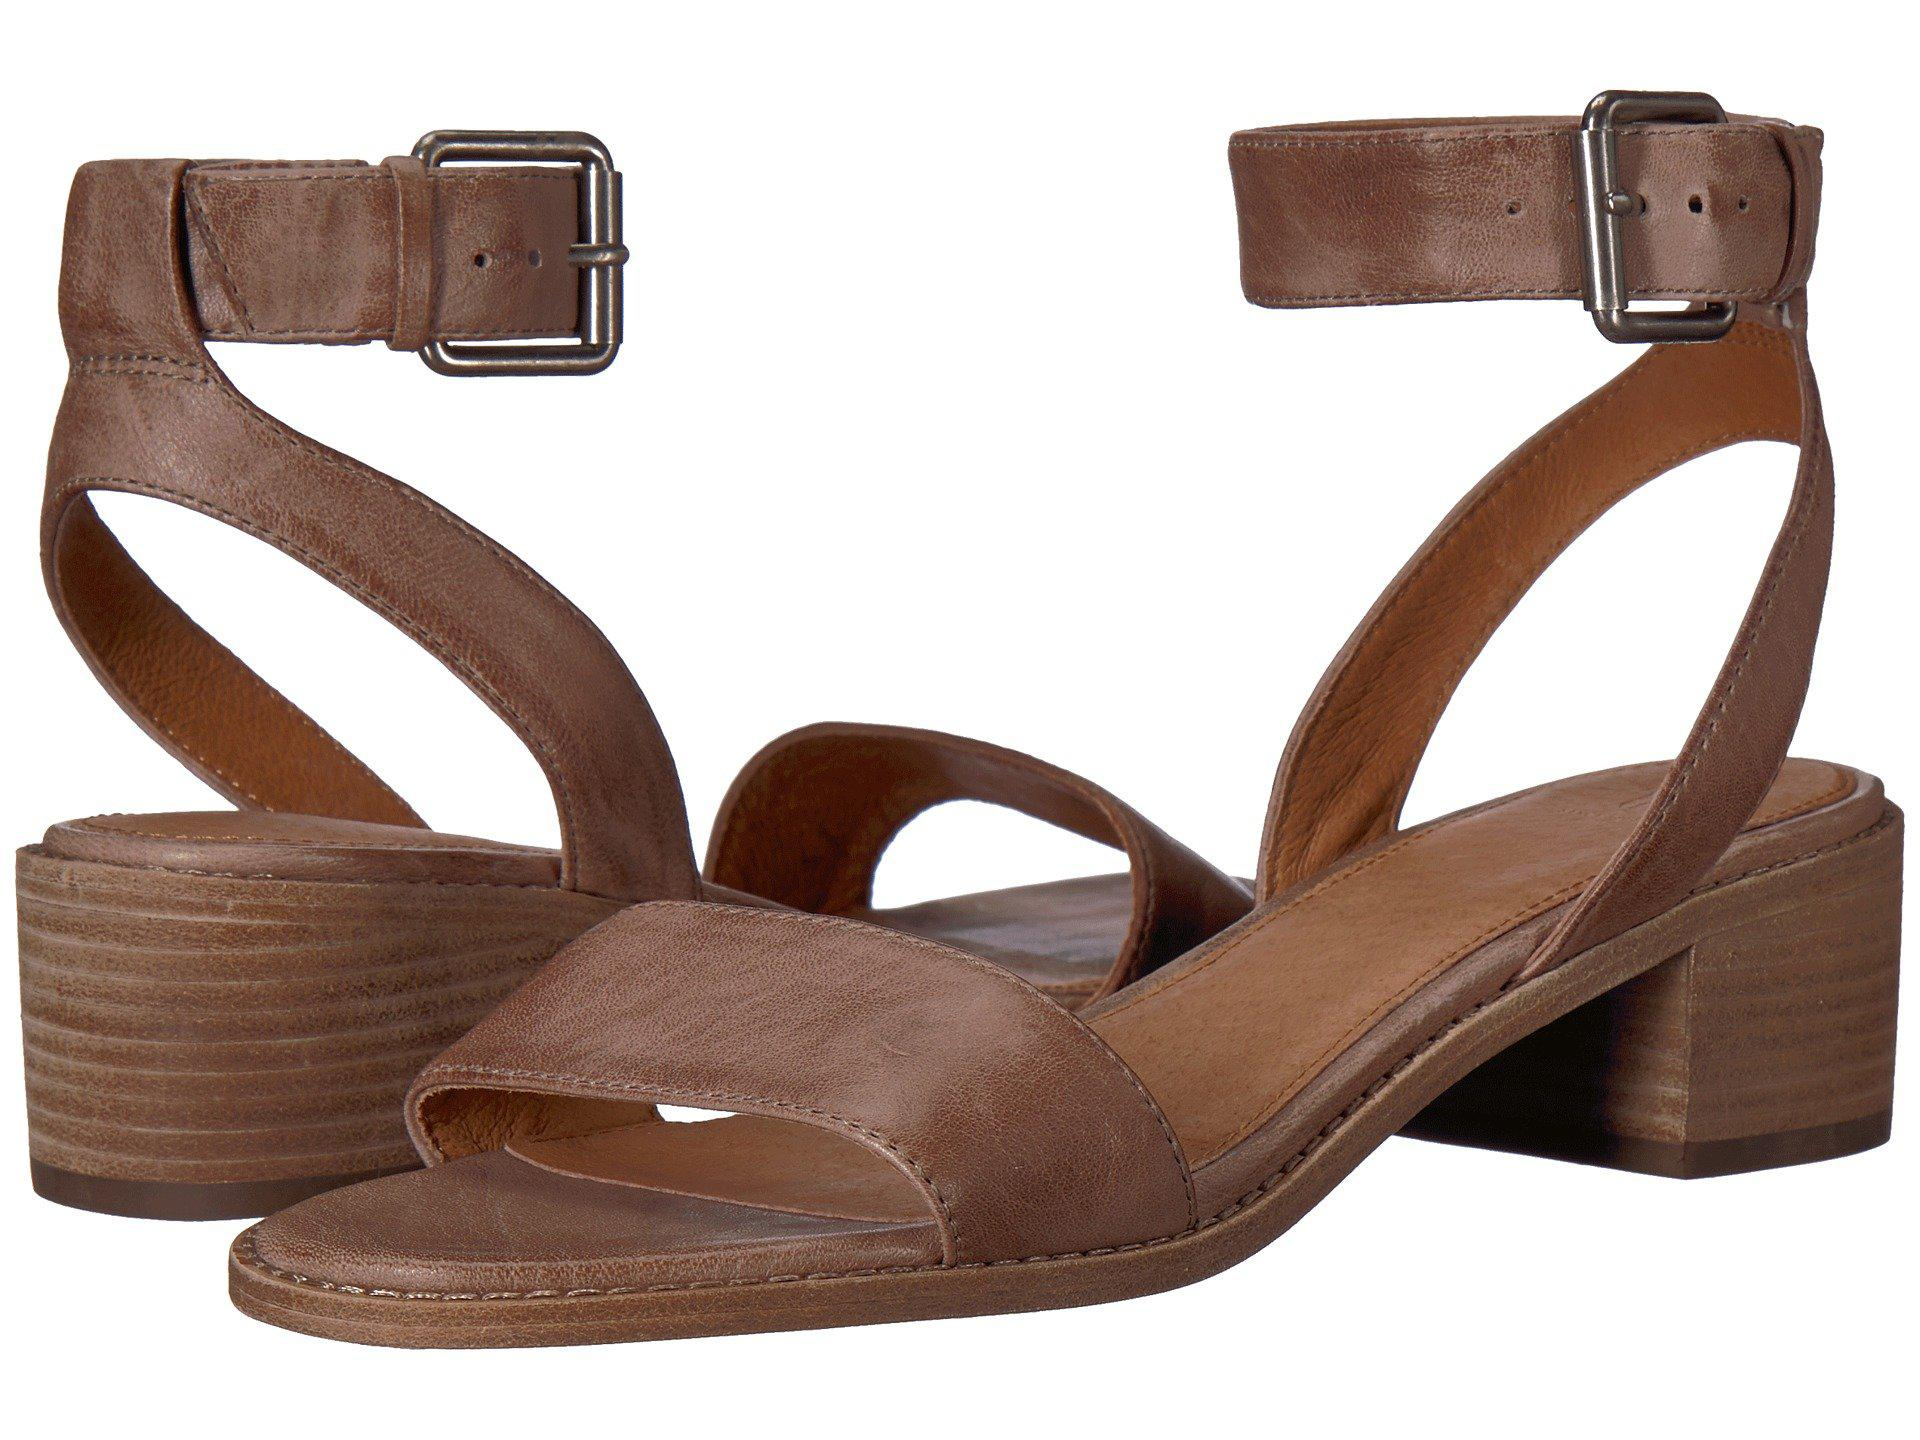 0133b4bc030 Lyst - Frye Cindy 2 Piece Heeled Sandal in Gray - Save 60%